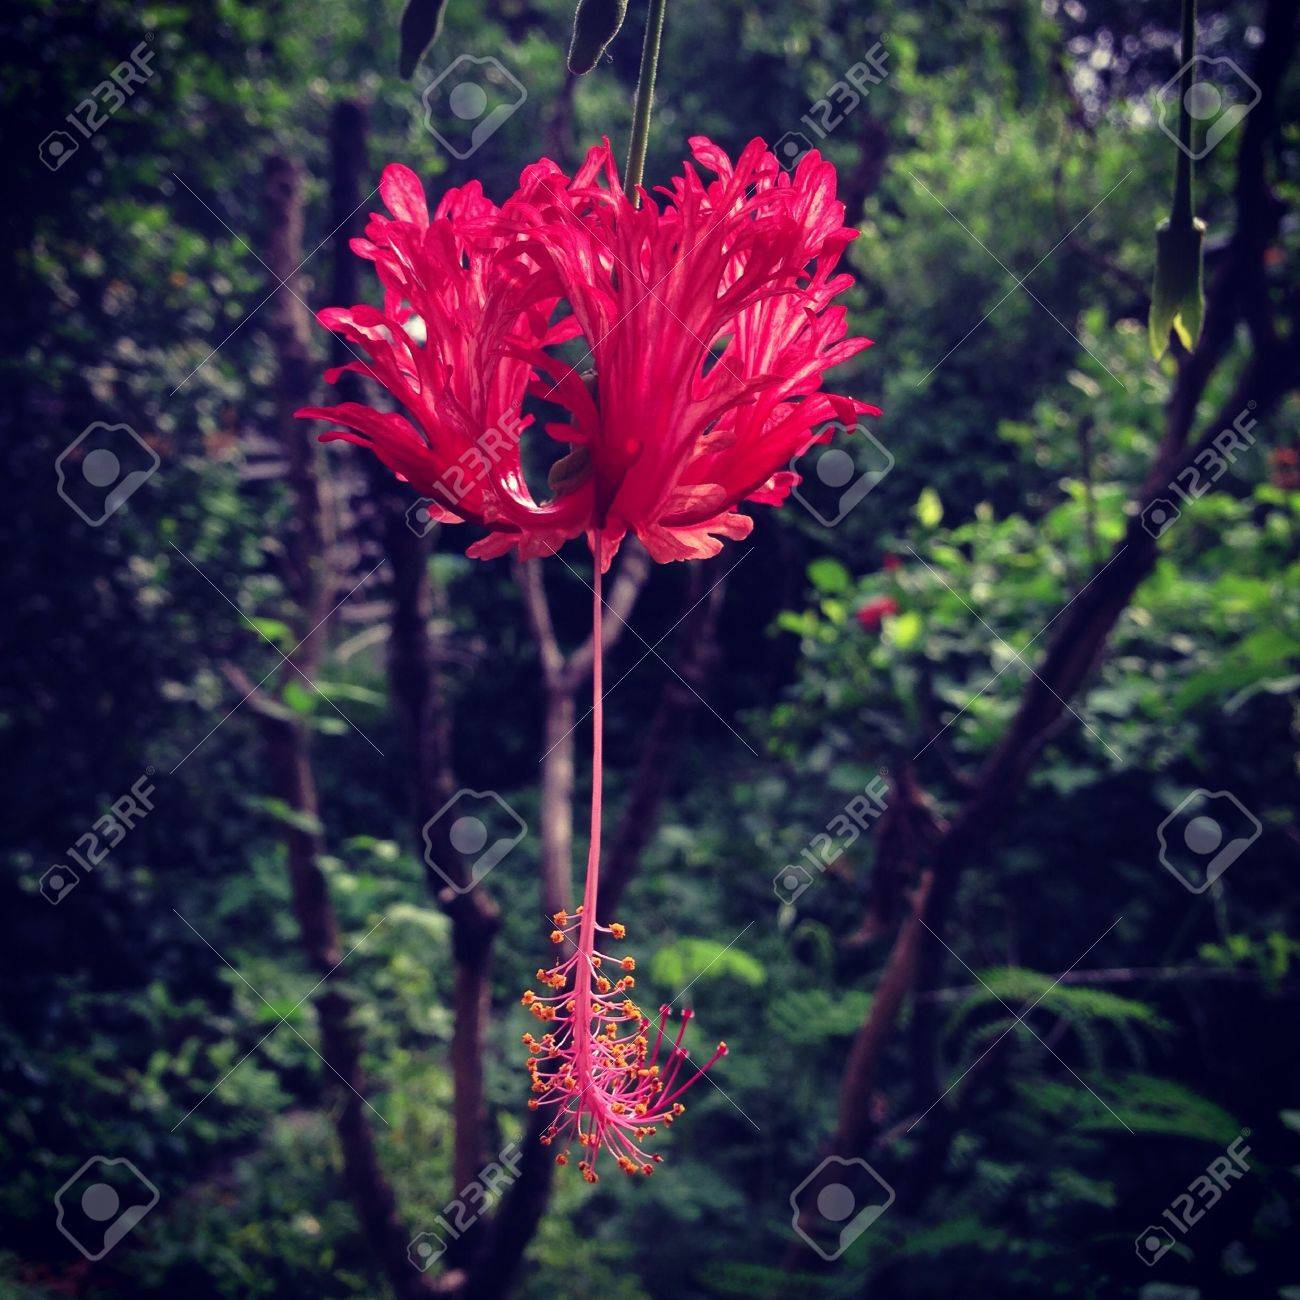 The red flower in the garden - 21342136